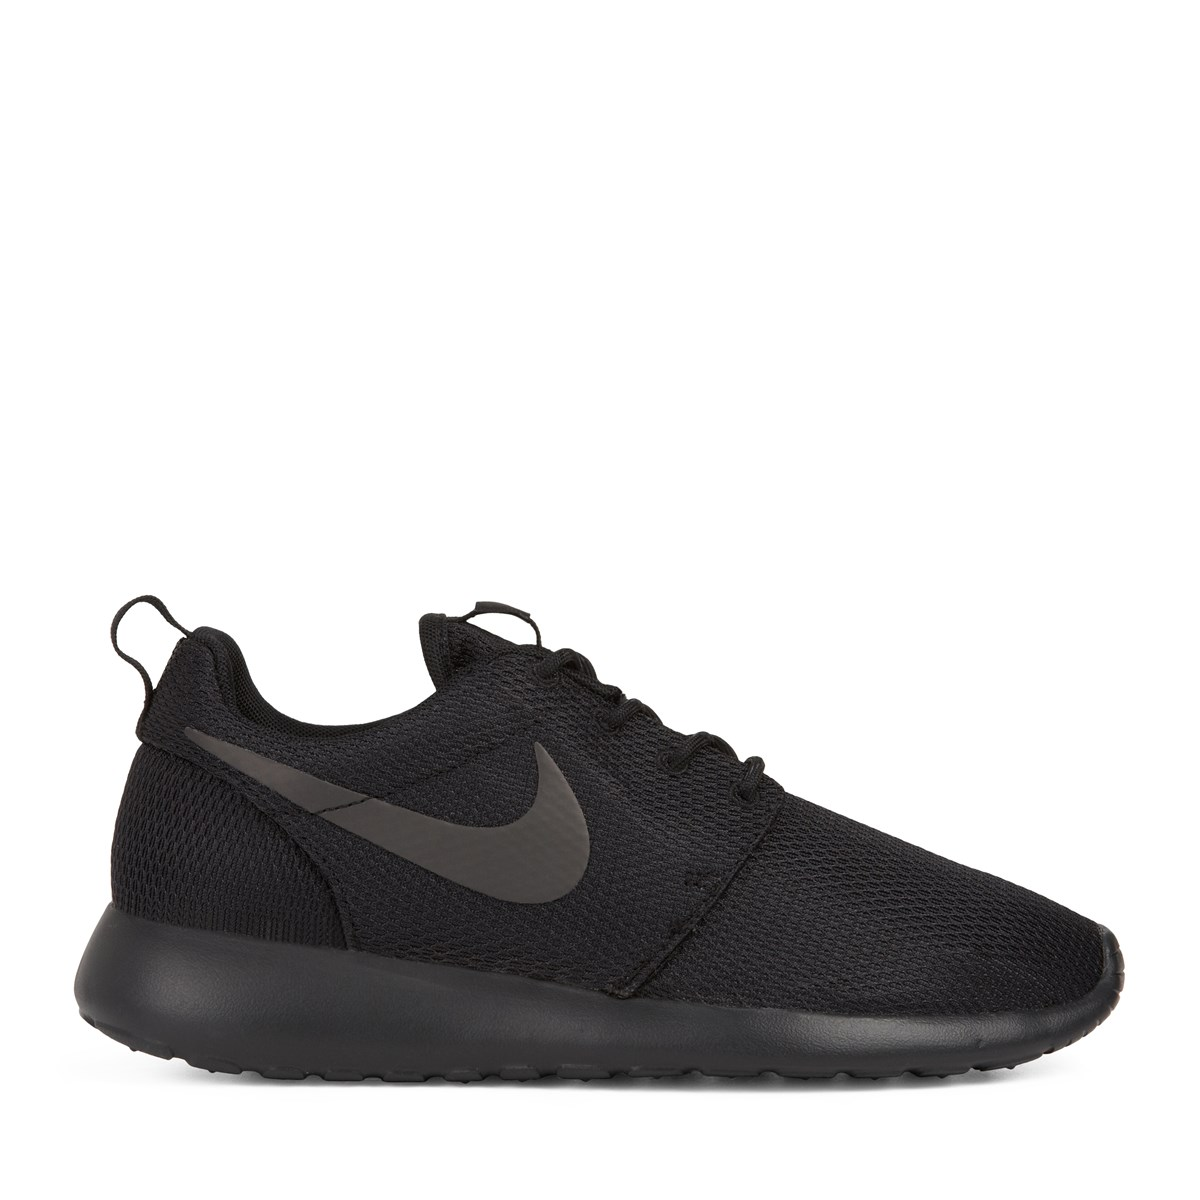 7ce4dc365622 Women s Roshe One All Black Sneaker. Previous. default view